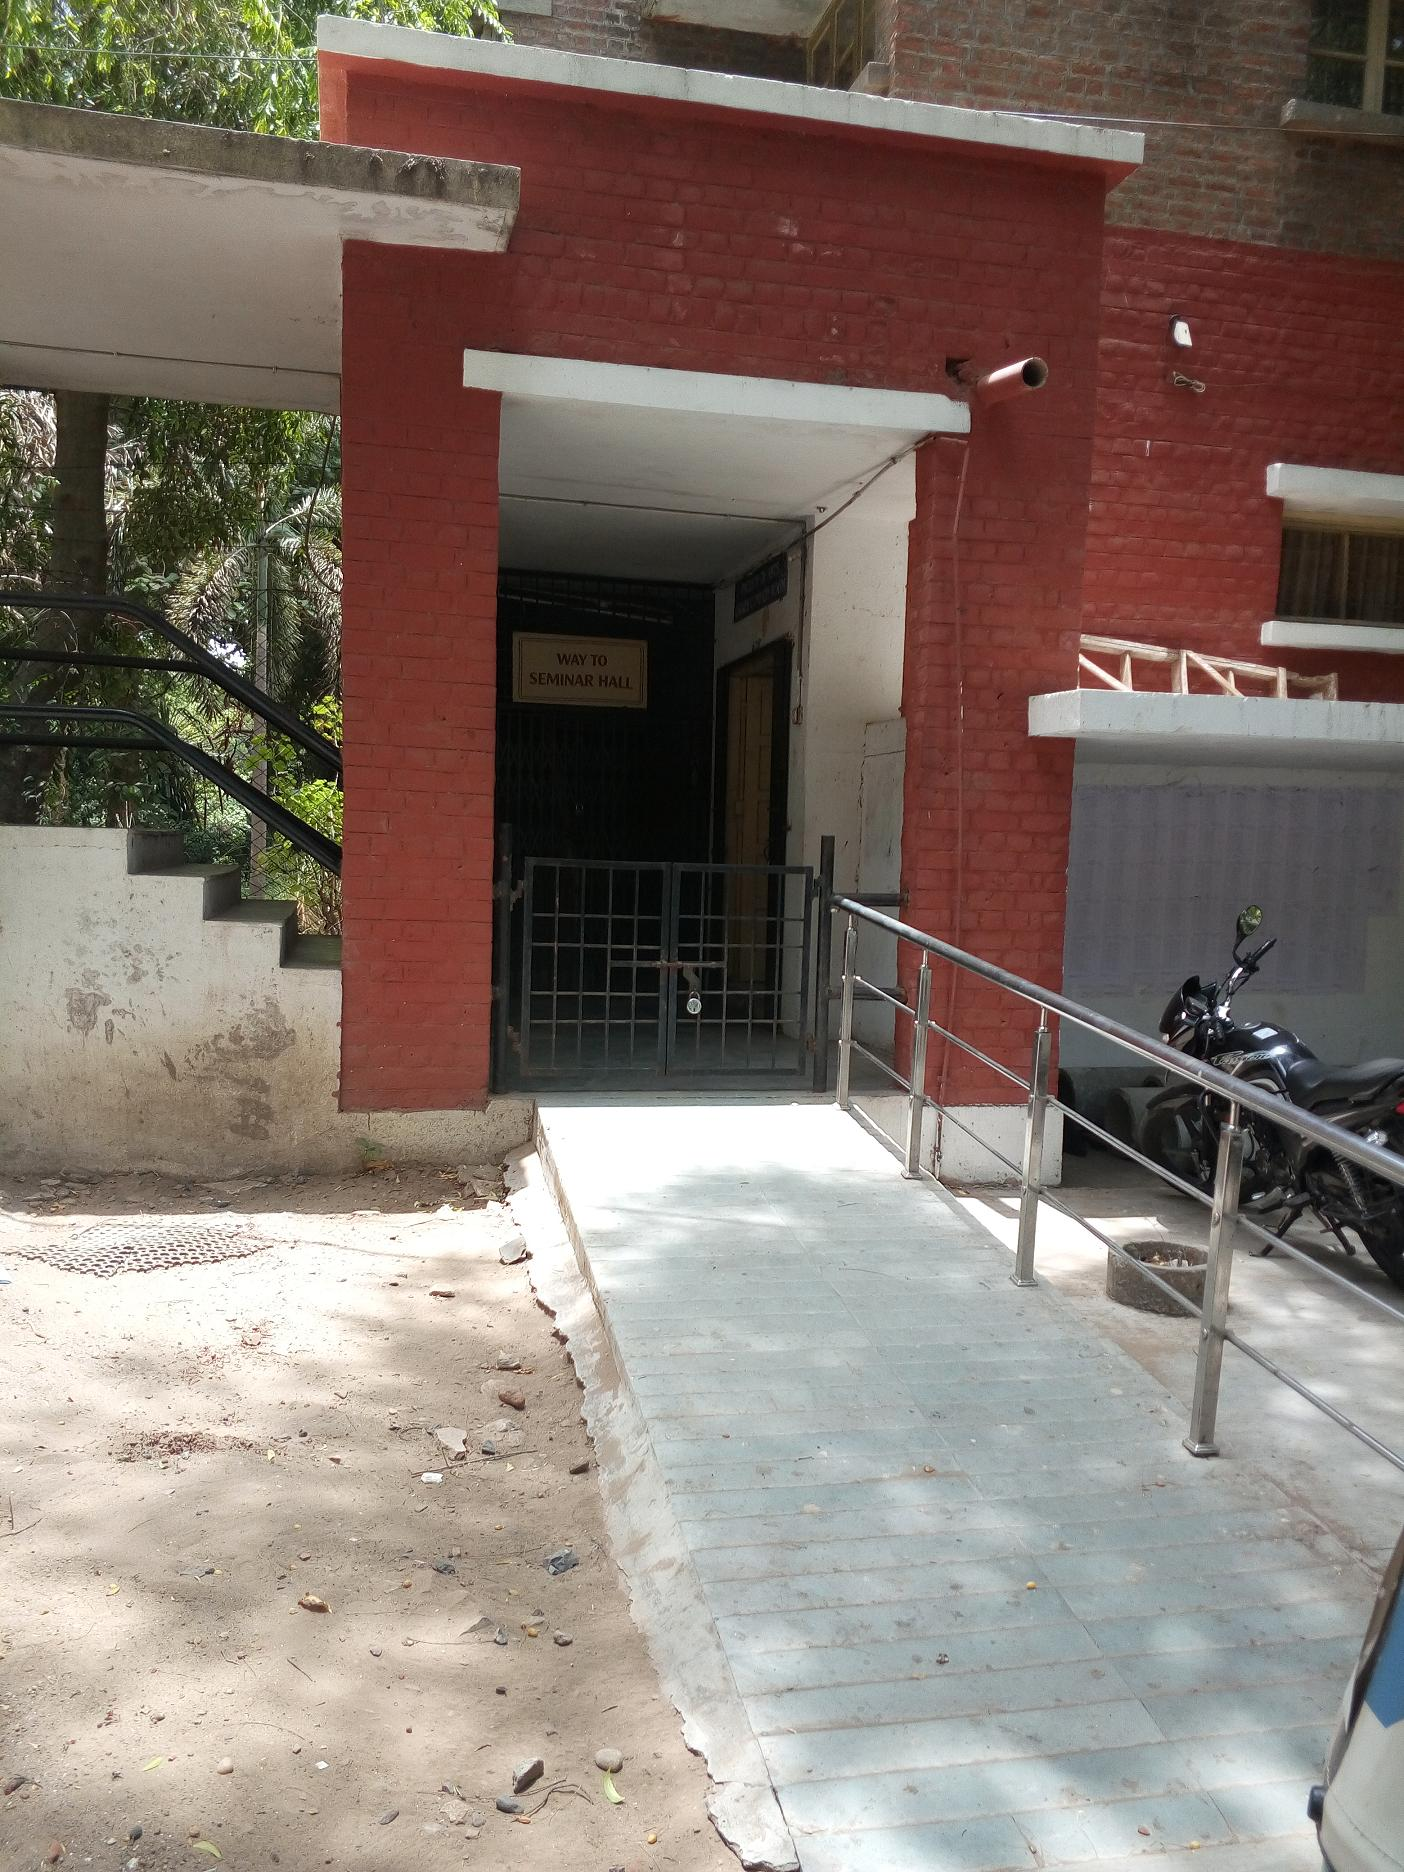 Inaccessible Ramp at Faculty of Commerce, Seminar Hall, MSUniversity